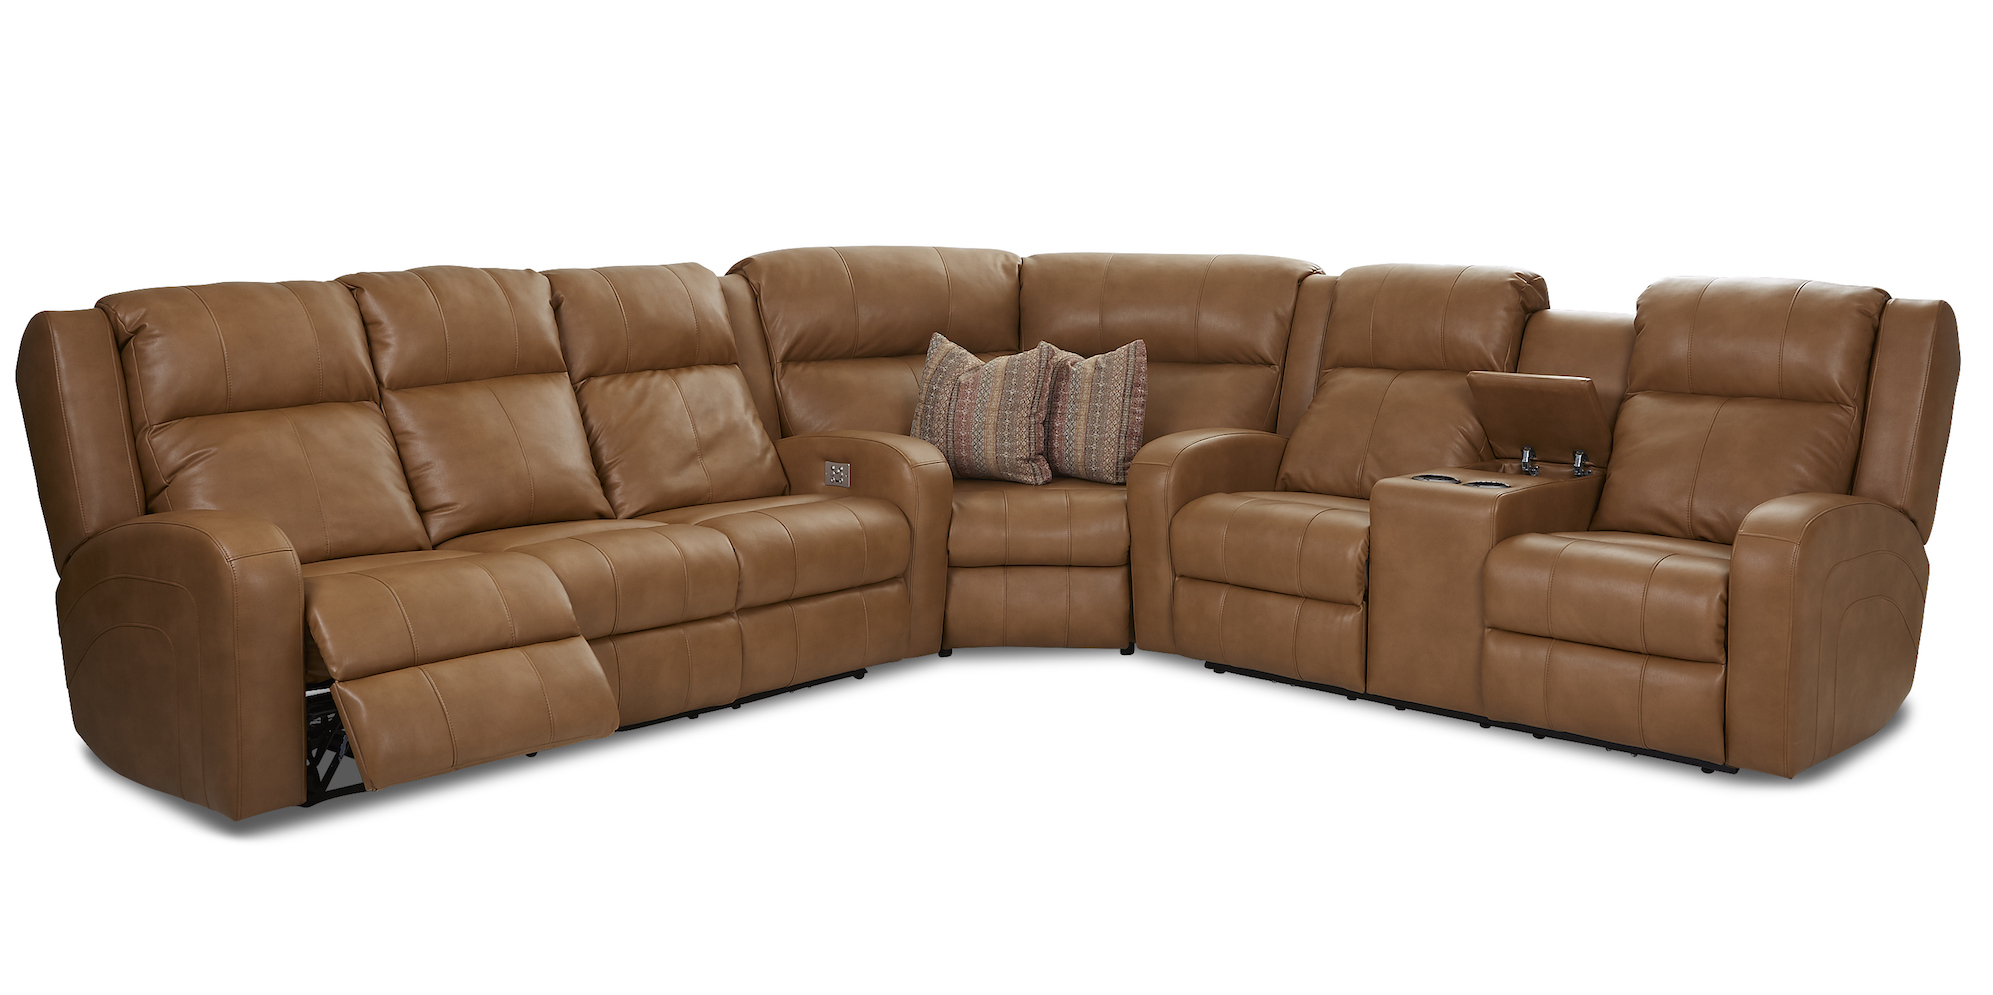 Prime Robinson 64943 Reclining Sectional Power Sofas And Sectionals Squirreltailoven Fun Painted Chair Ideas Images Squirreltailovenorg